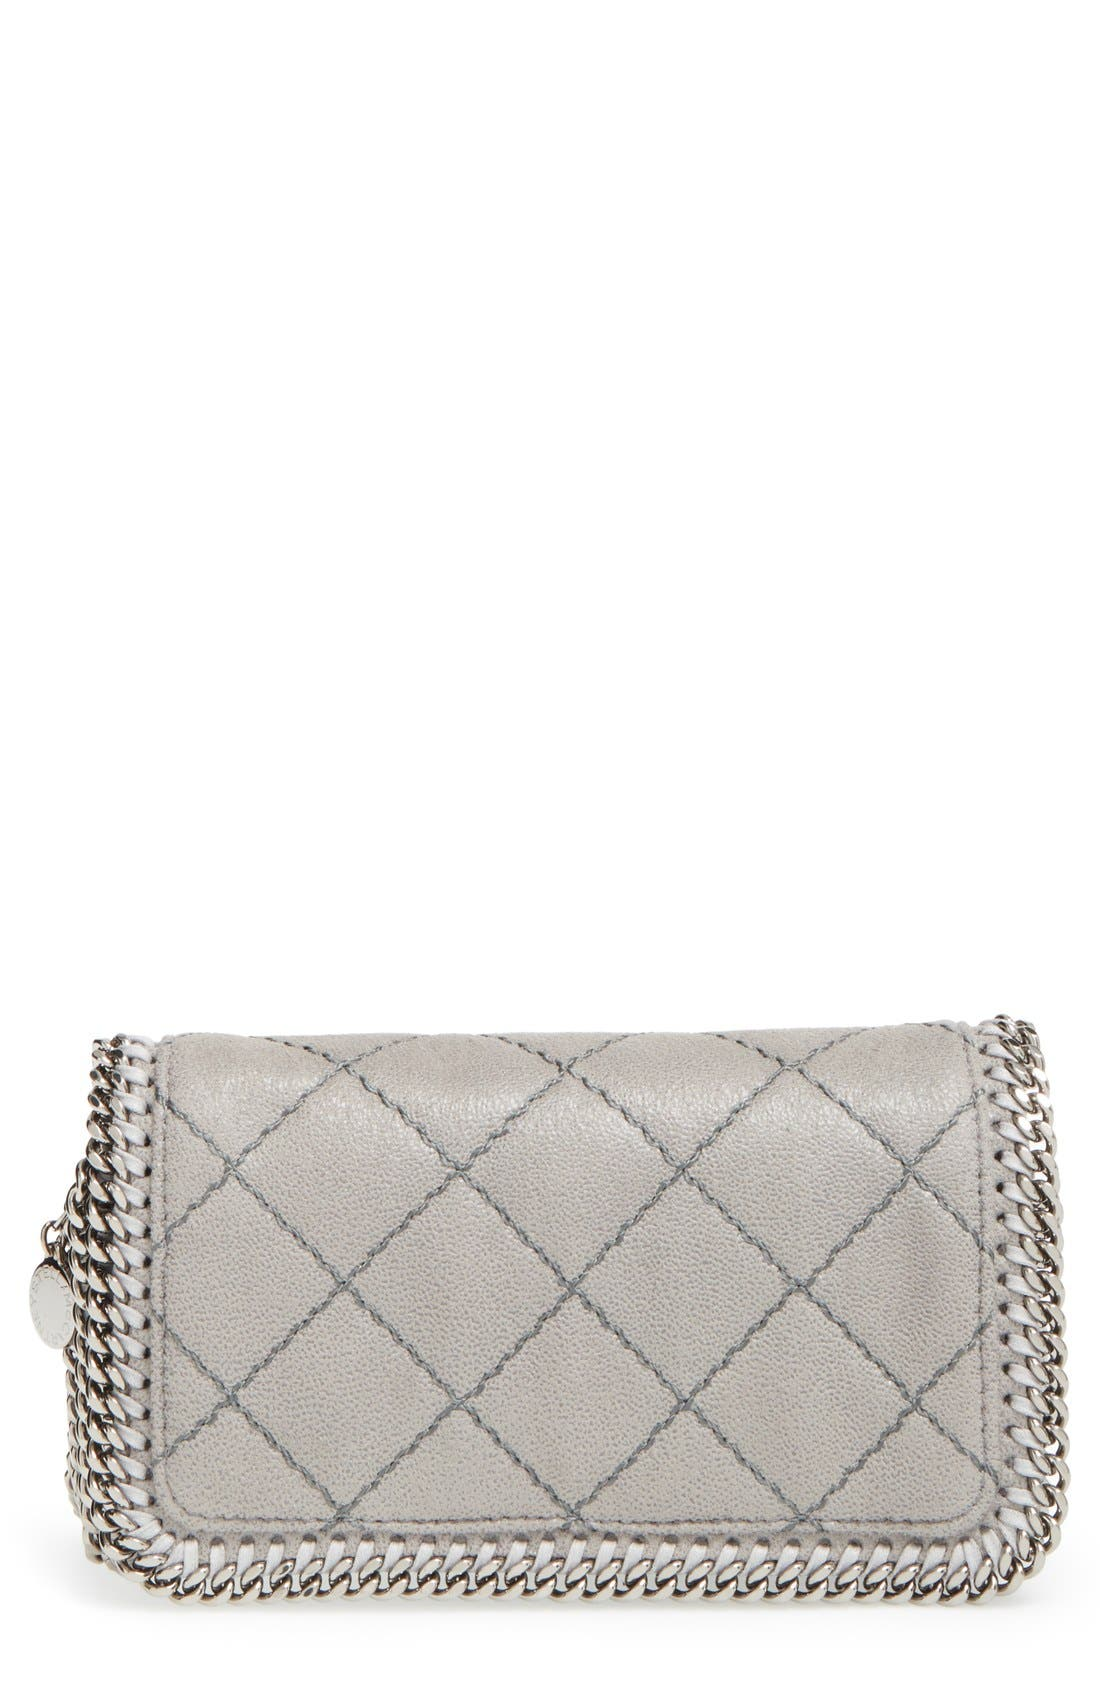 'Falabella' Quilted Faux Leather Crossbody Bag,                             Main thumbnail 1, color,